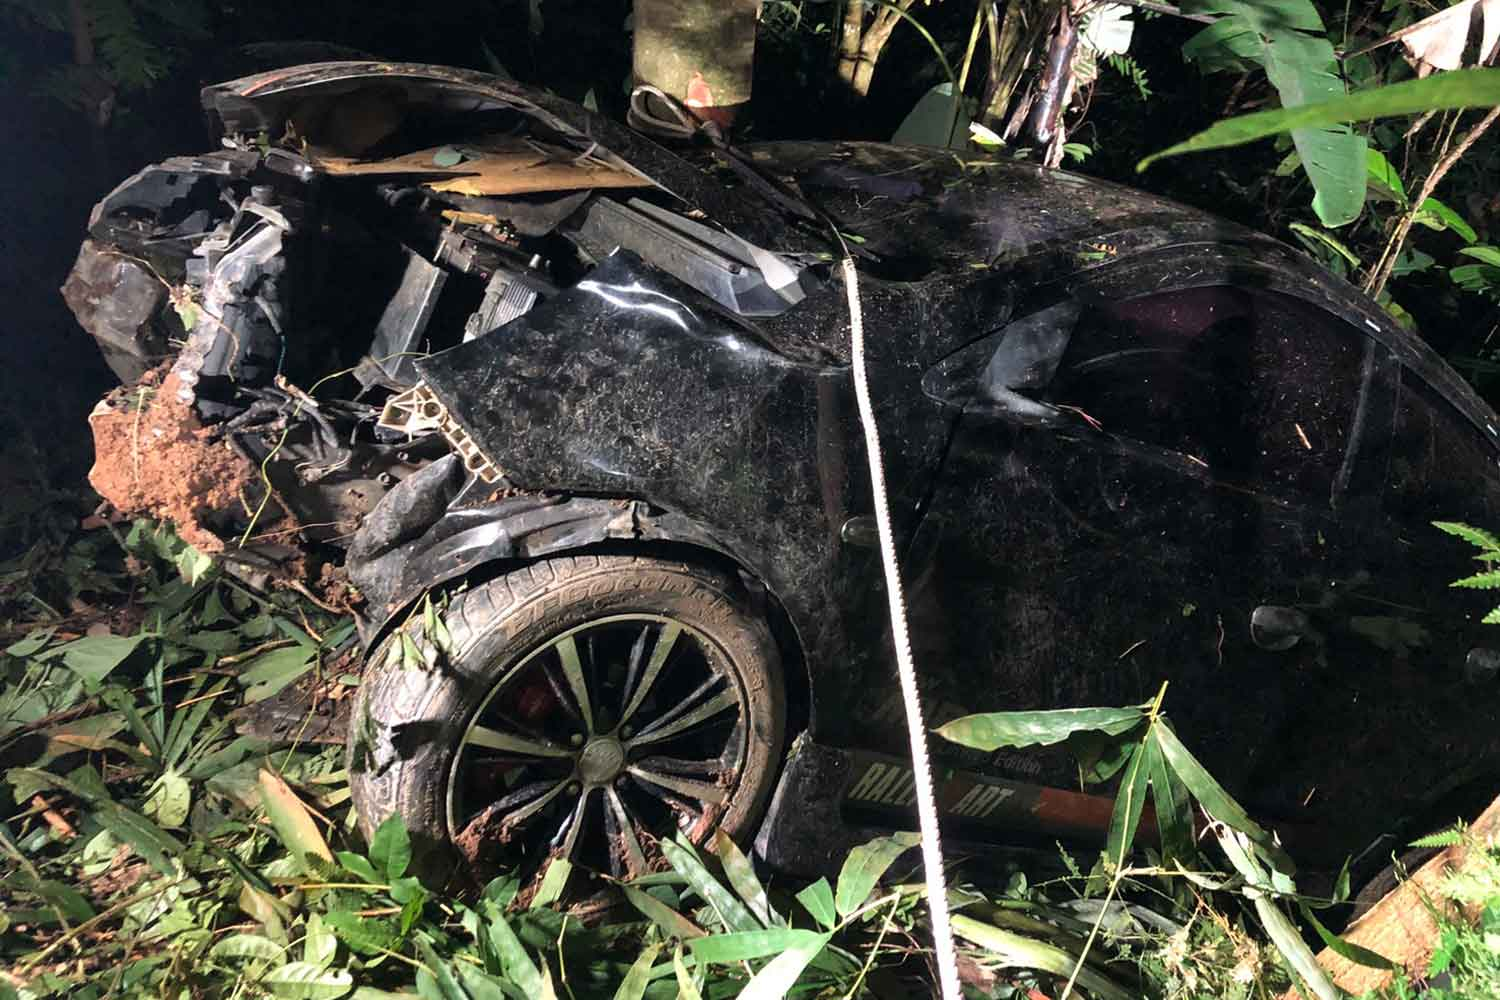 The Mitsubishi Mirage car after it a plunged into a ravine from the main highway in Na Mom district of Songkhla province early on Monday night. The driver had only minor injuries and did not bother to wait around for police. (Photo: Assawin Pakkawan)